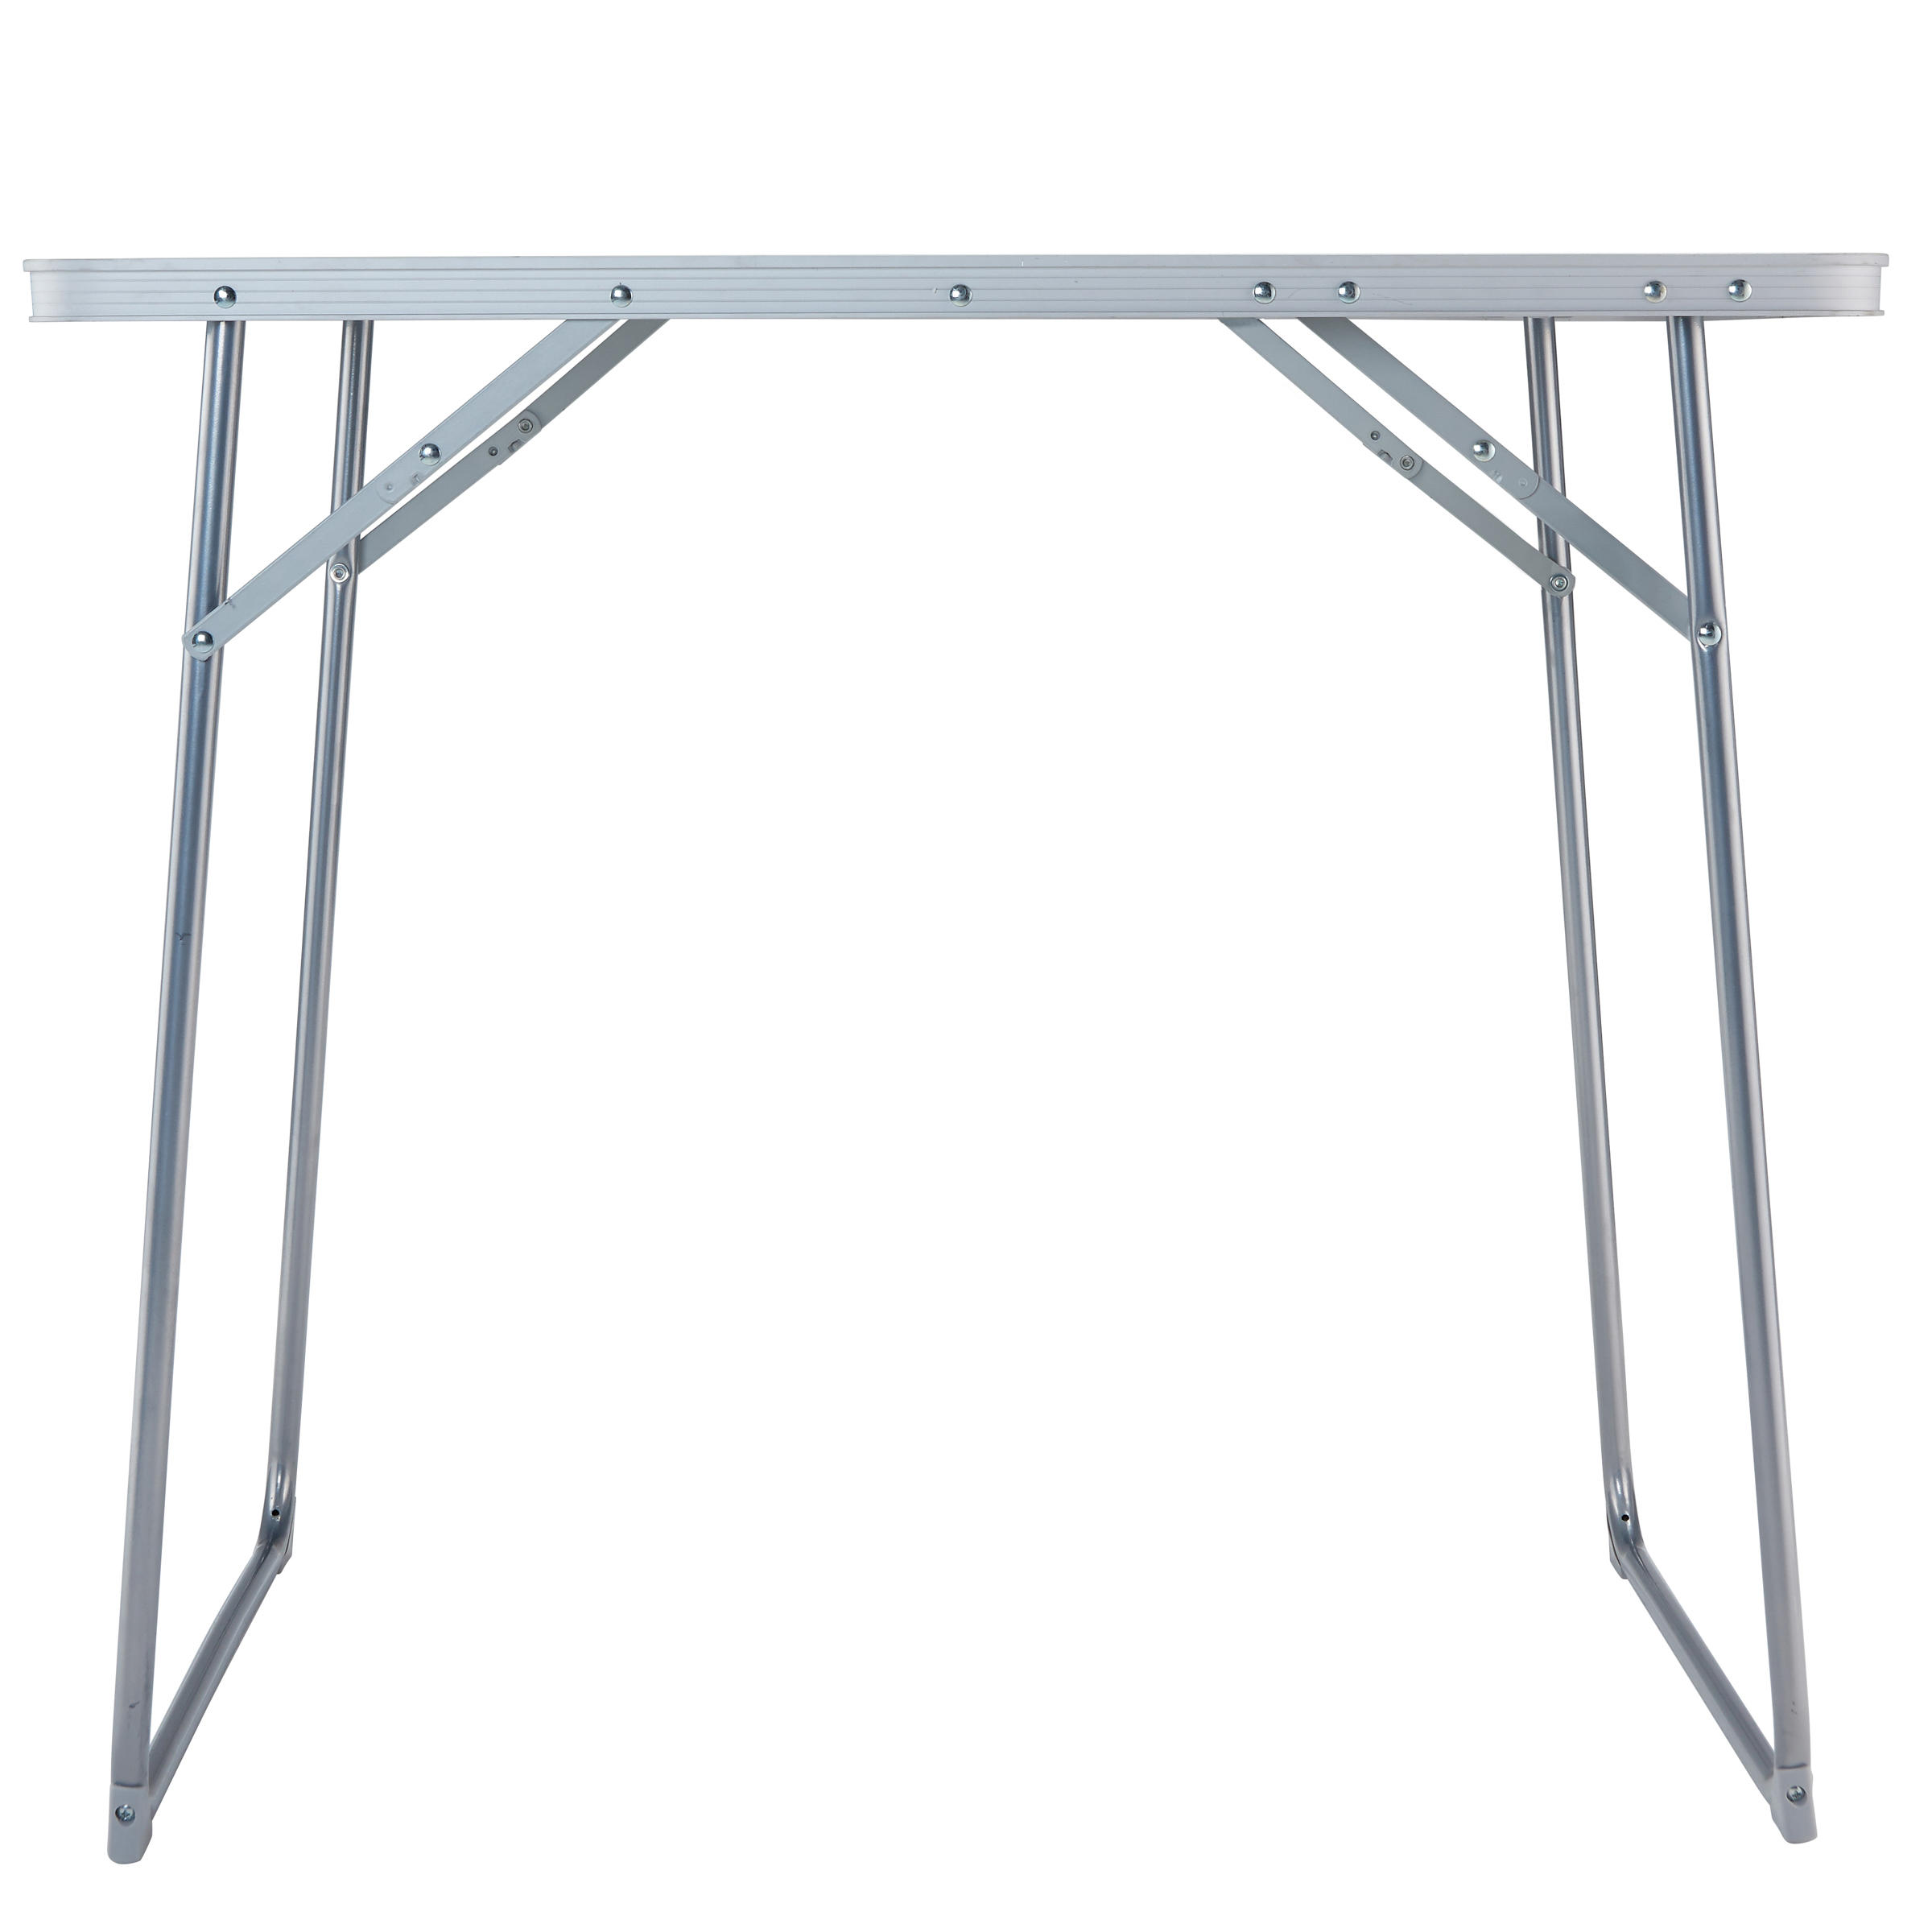 Folding Camping/Trekking Table 4-Person - Grey